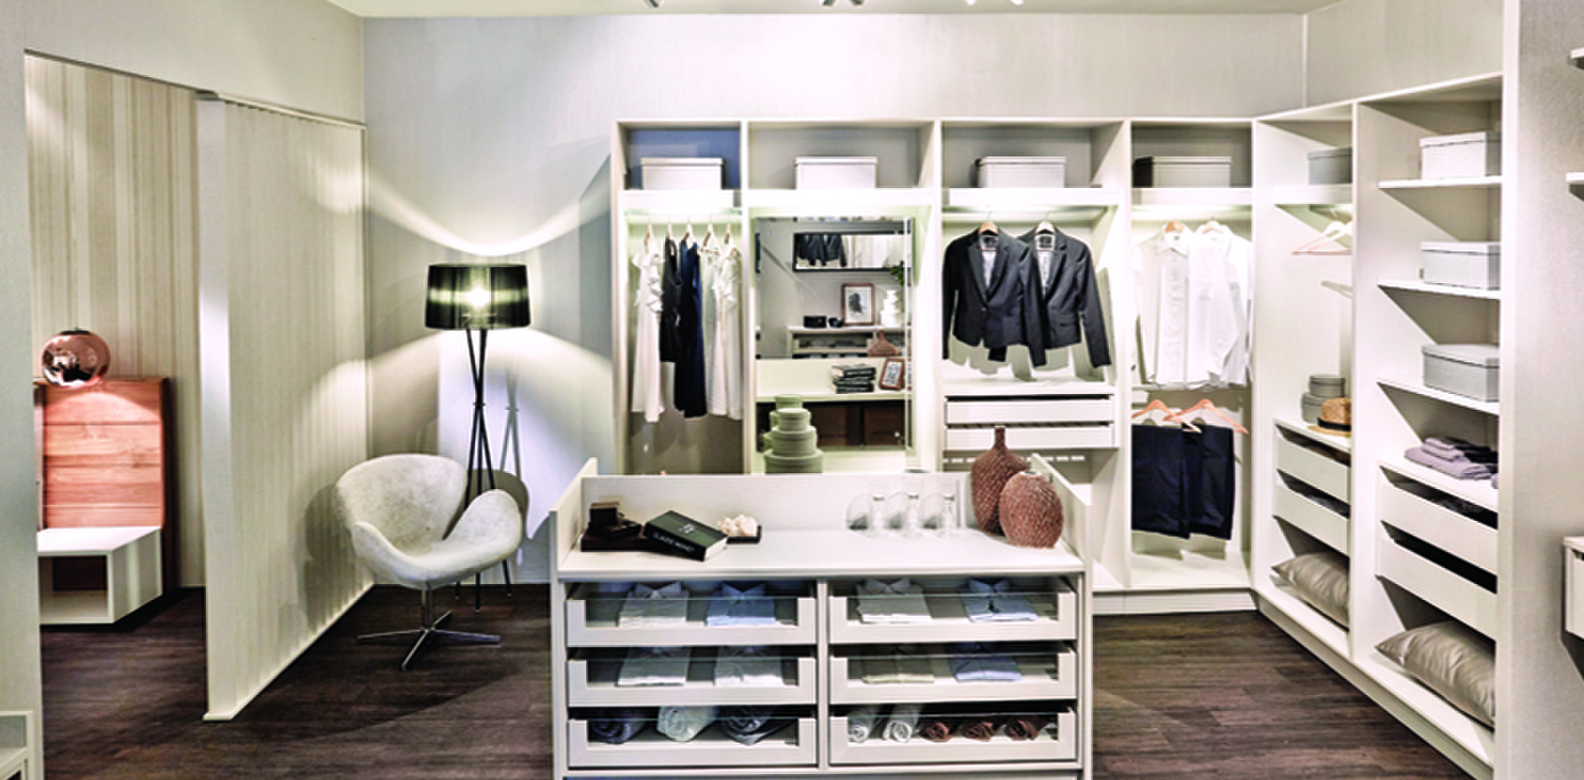 How To Perfectly Organise Your Walk In Wardrobe